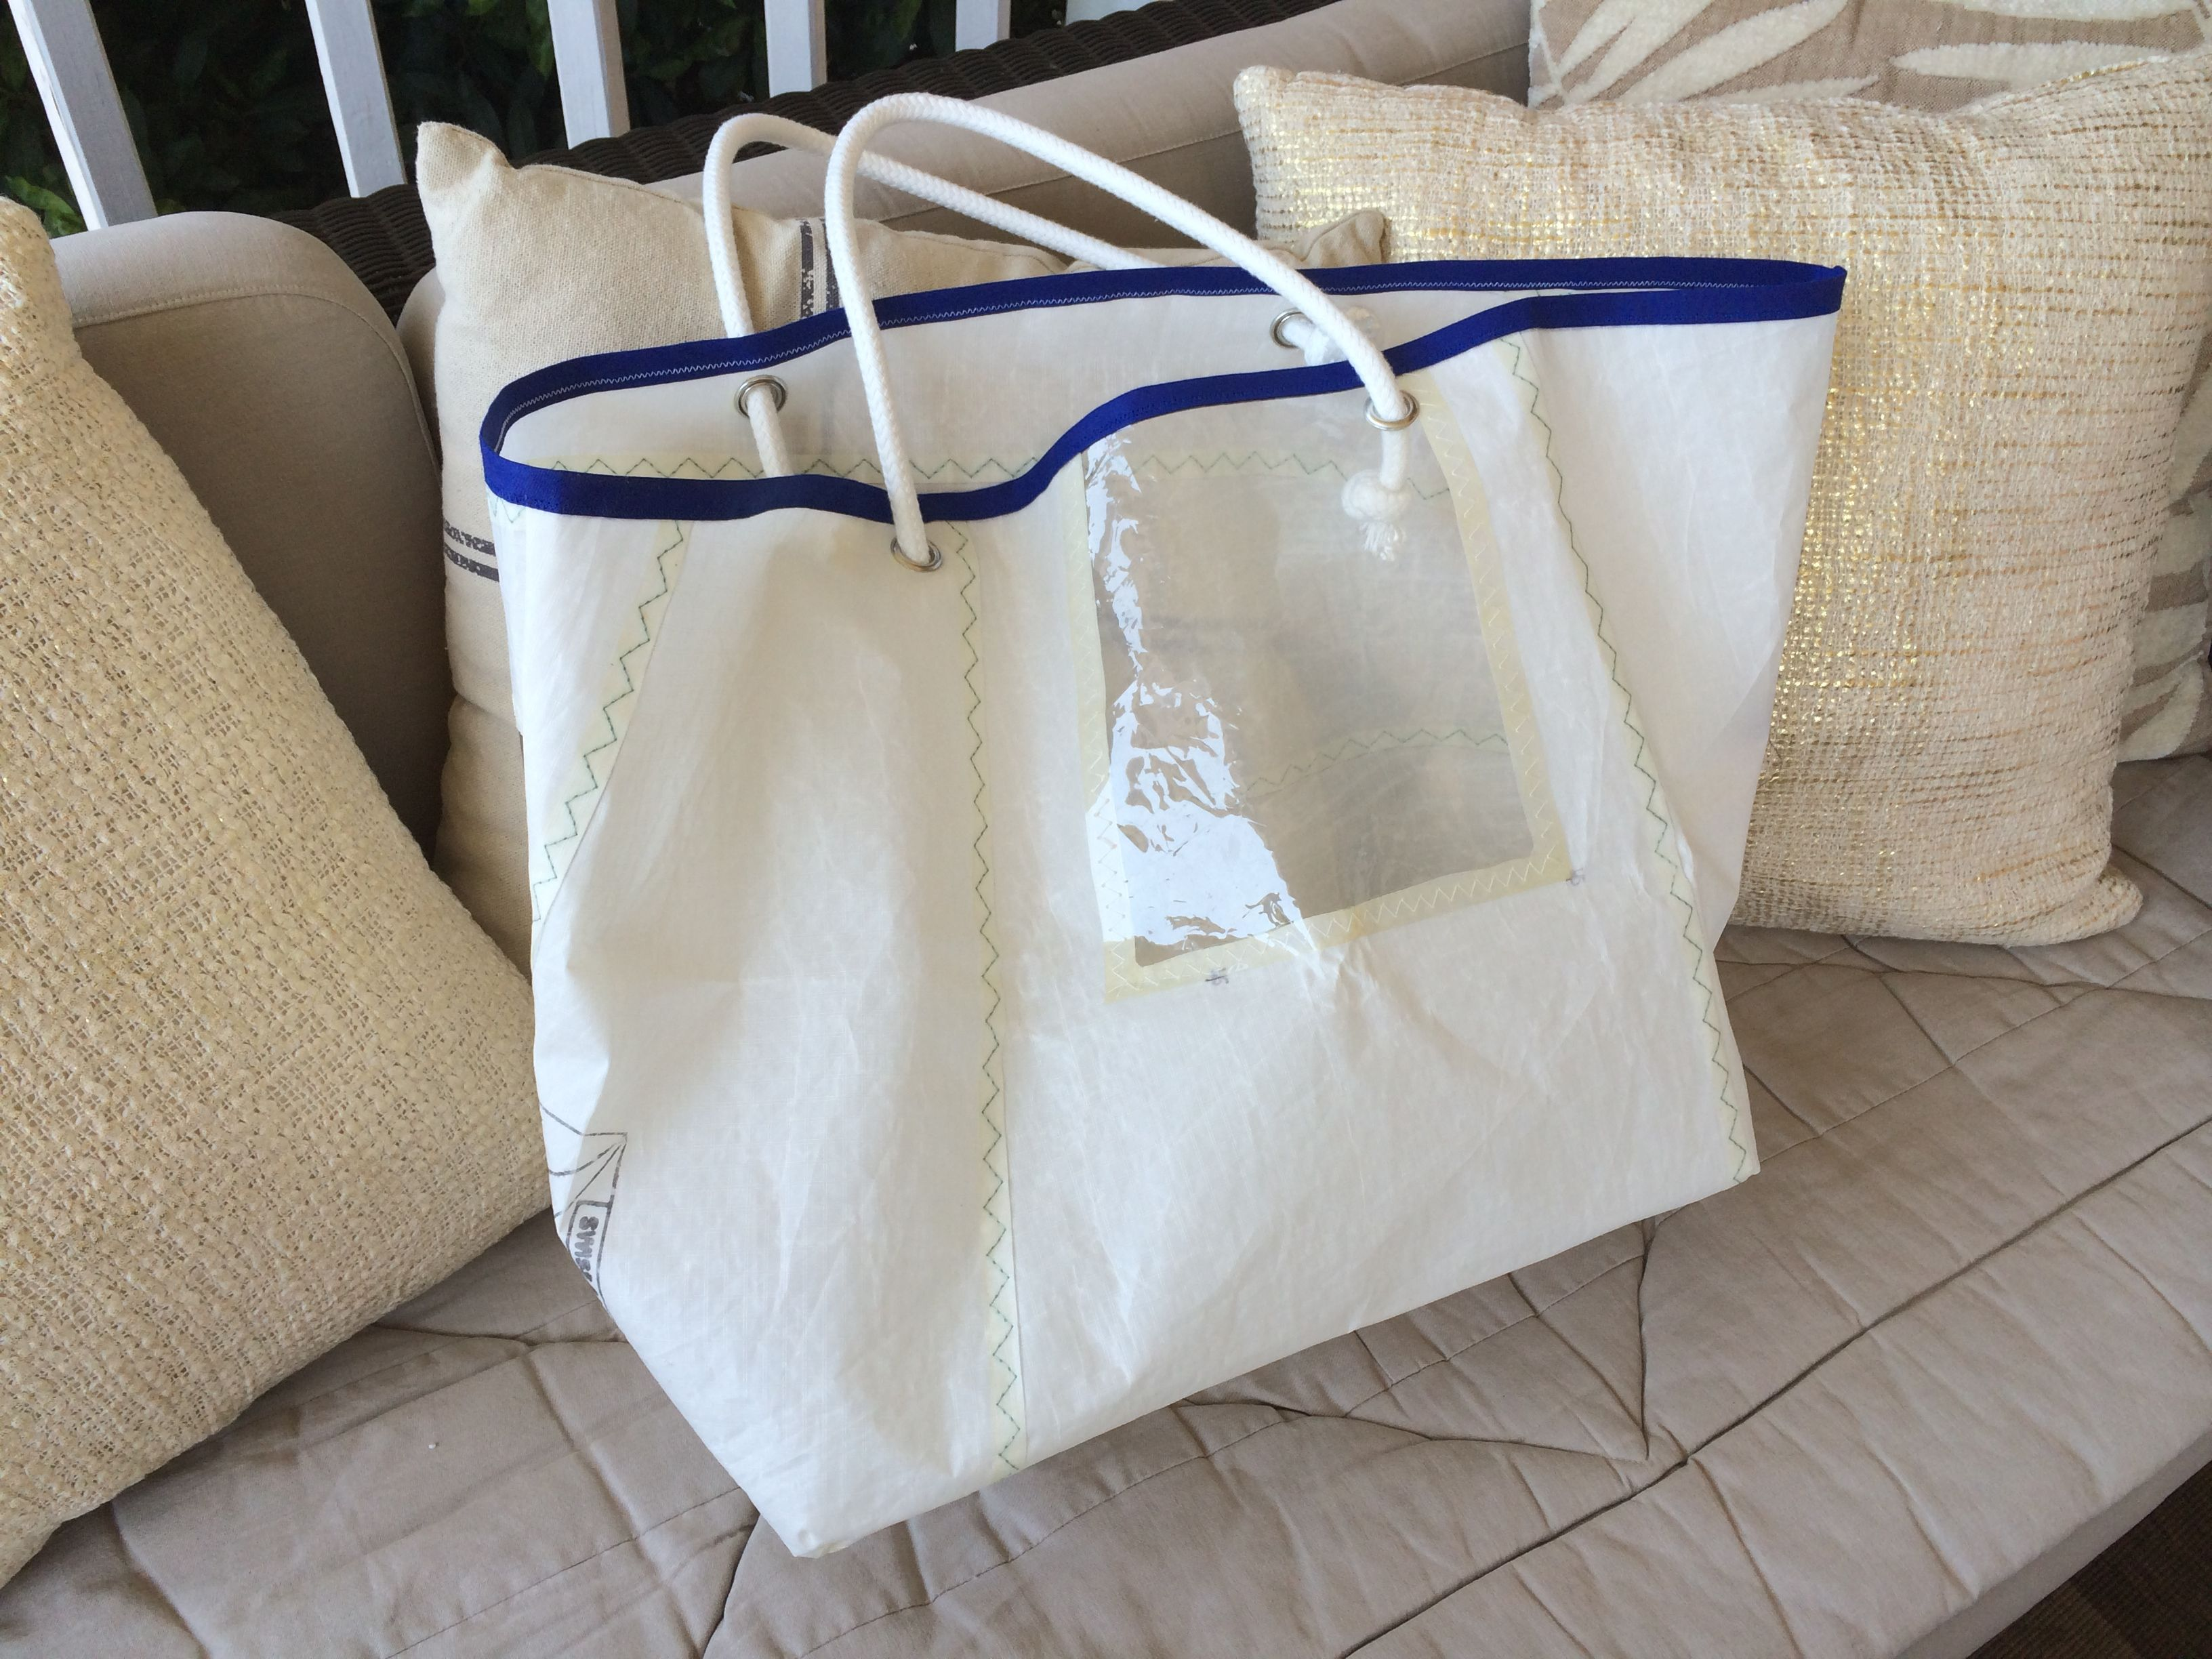 Sail cloth bag  Made out of recycled sali clothI used the part with